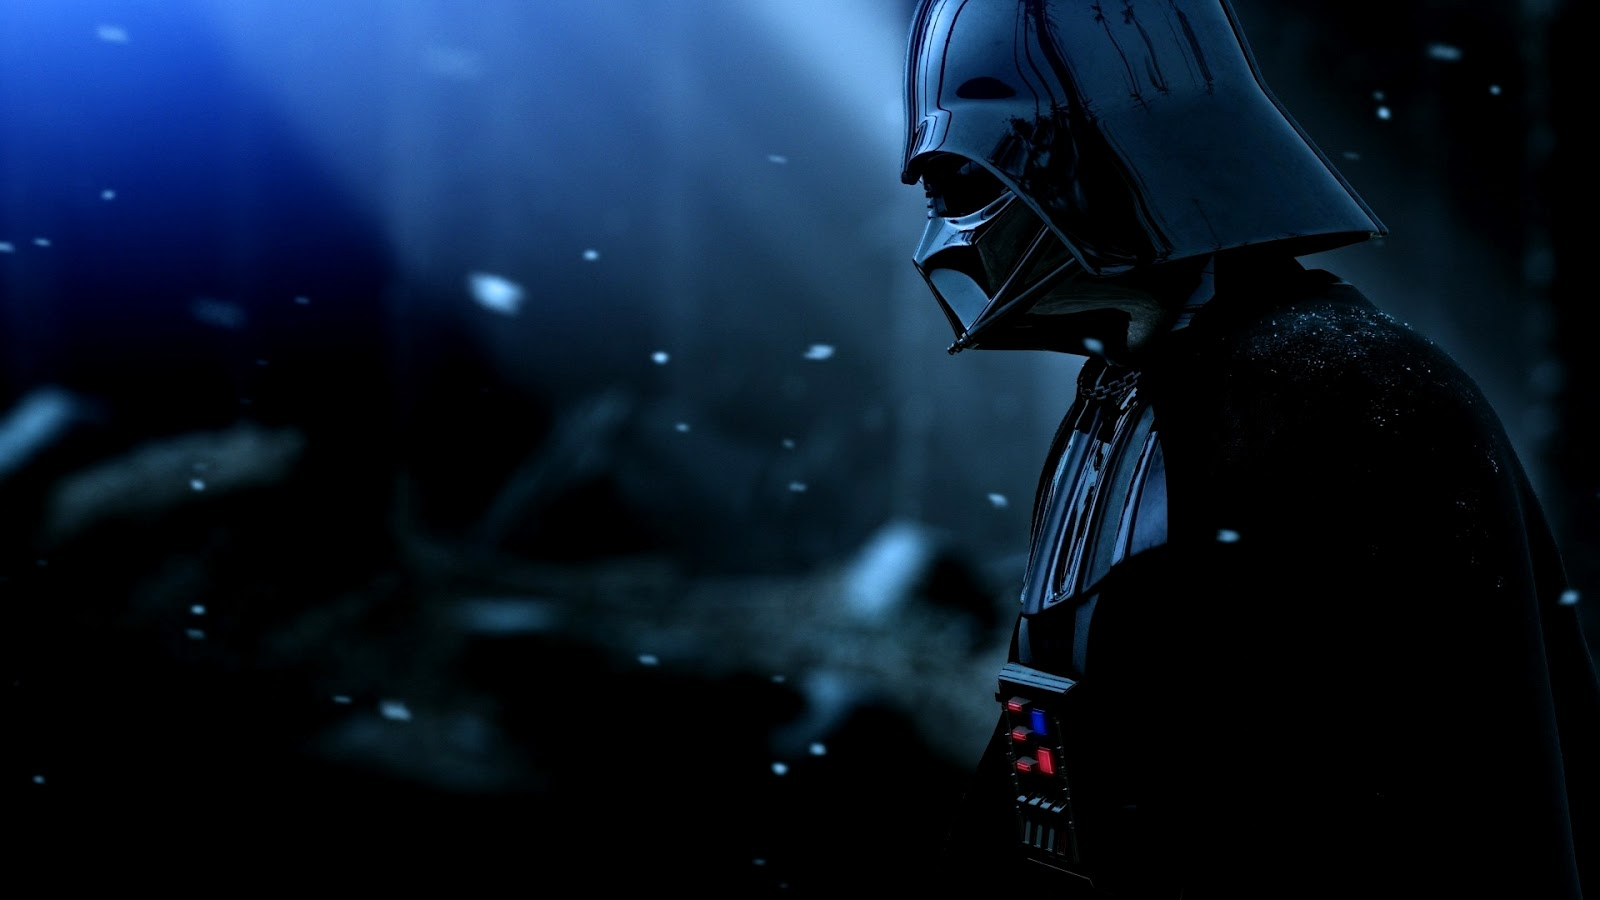 Darth Vader Star Wars Black 1920x1080 Wallpapers Full Hd Backgrounds